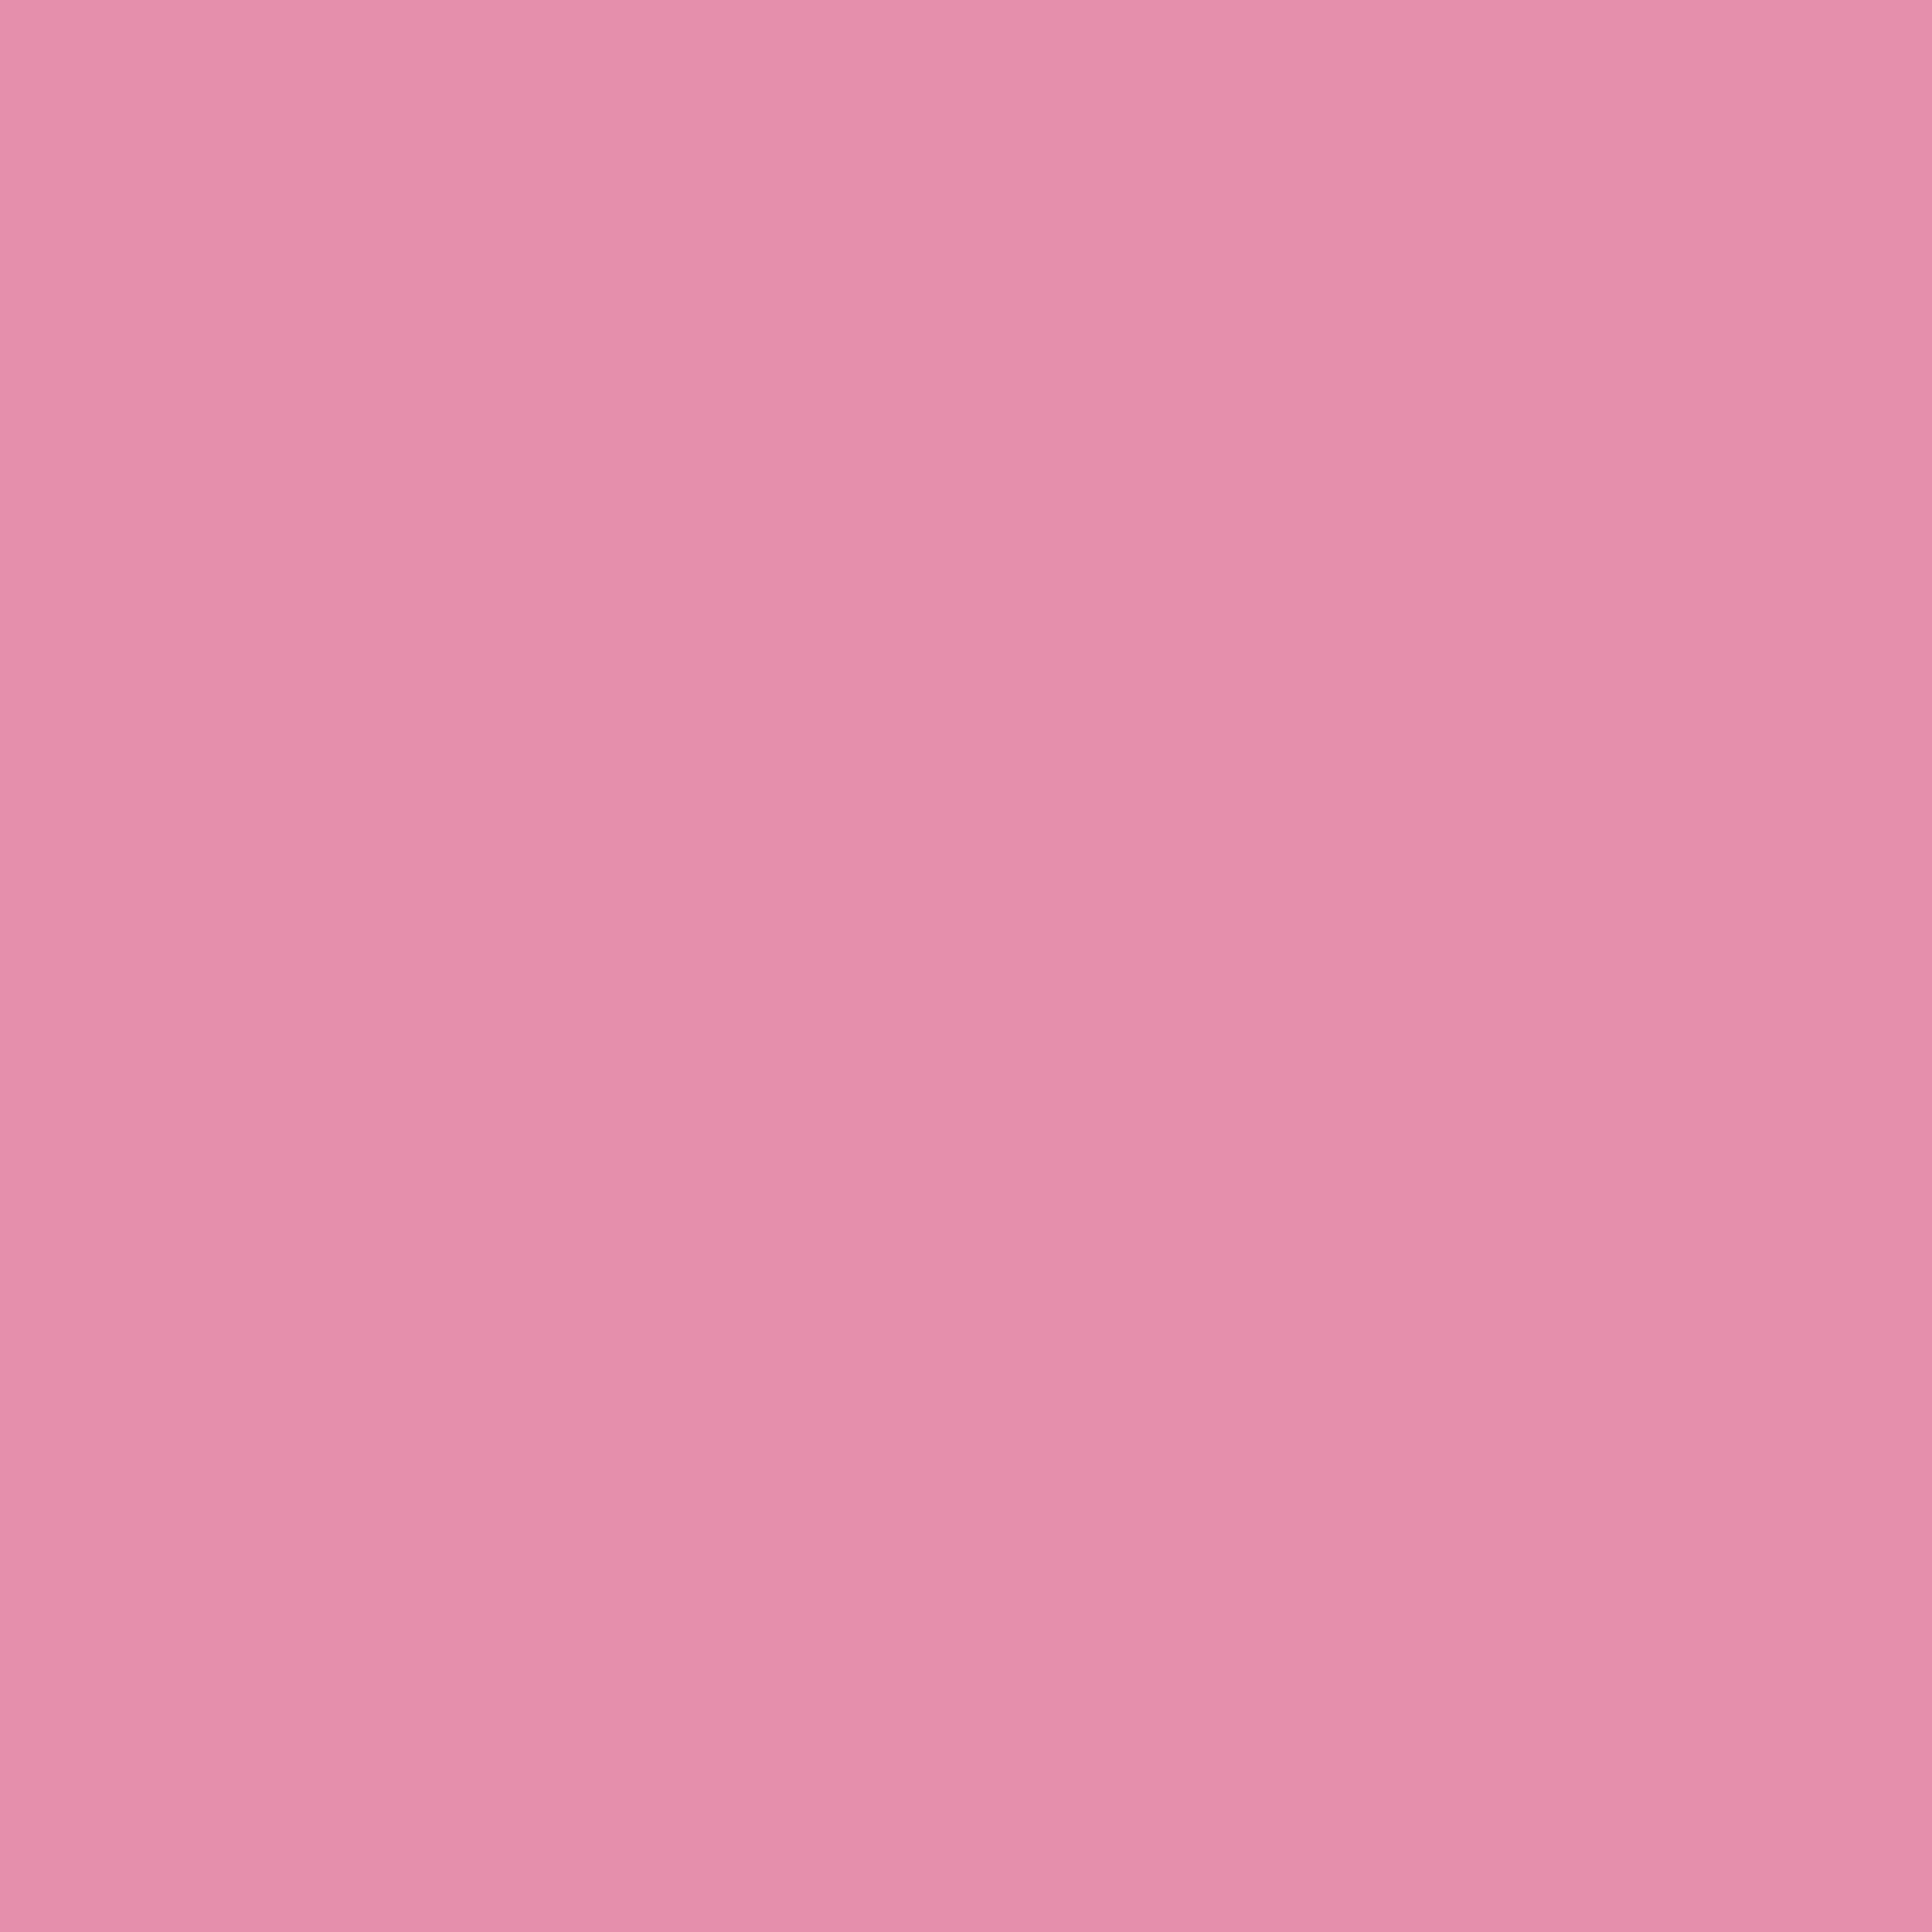 2048x2048 Charm Pink Solid Color Background 2048x2048